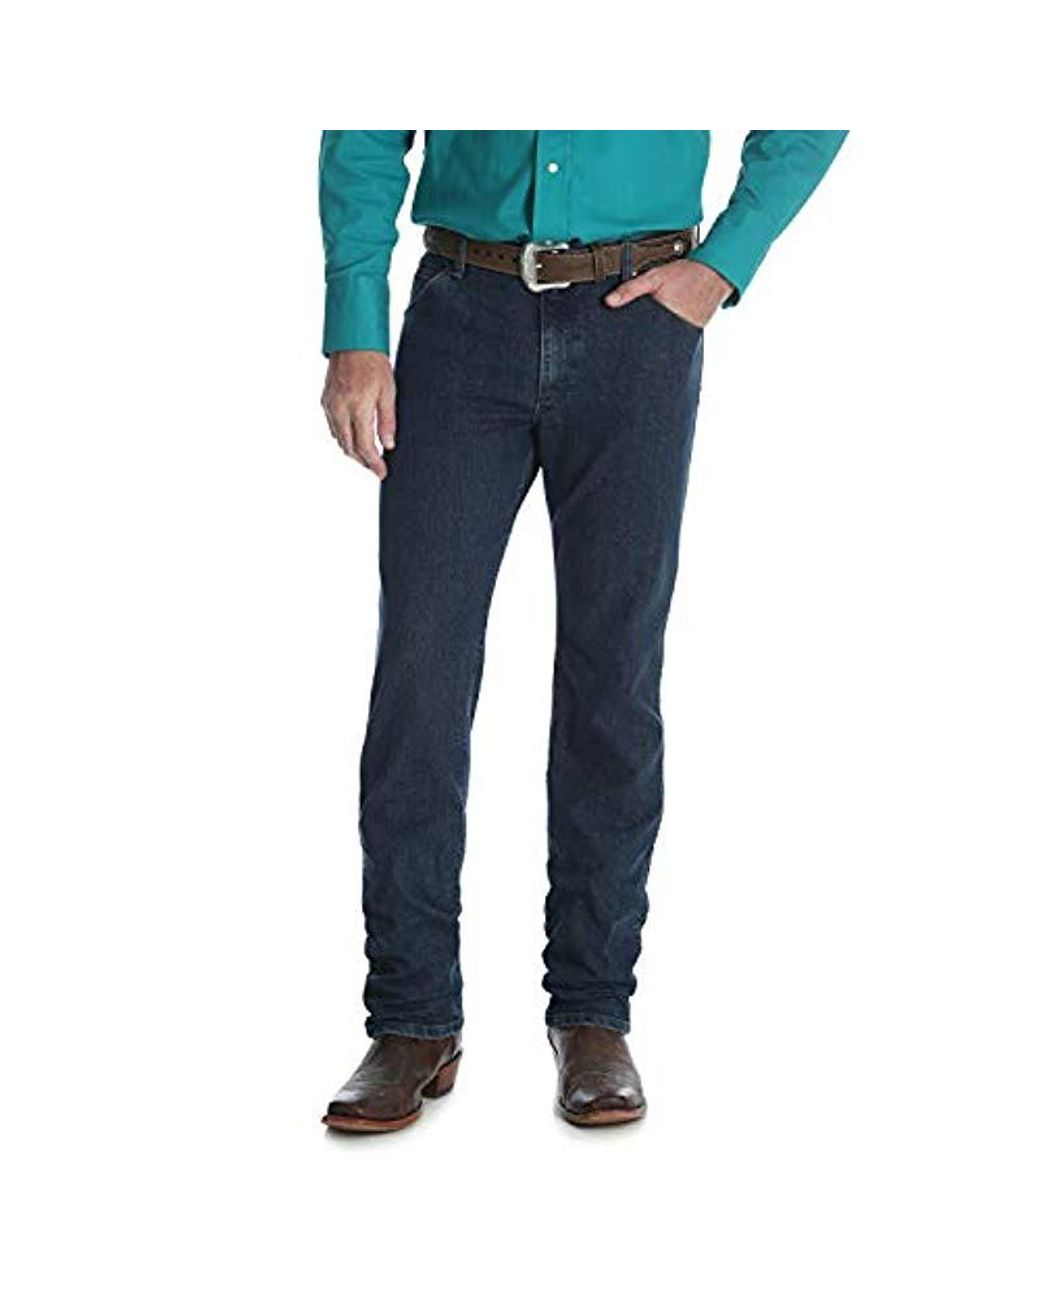 WRANGLER TEXAS JEANS FABRIC CAMEL ALL SIZES RRP £65